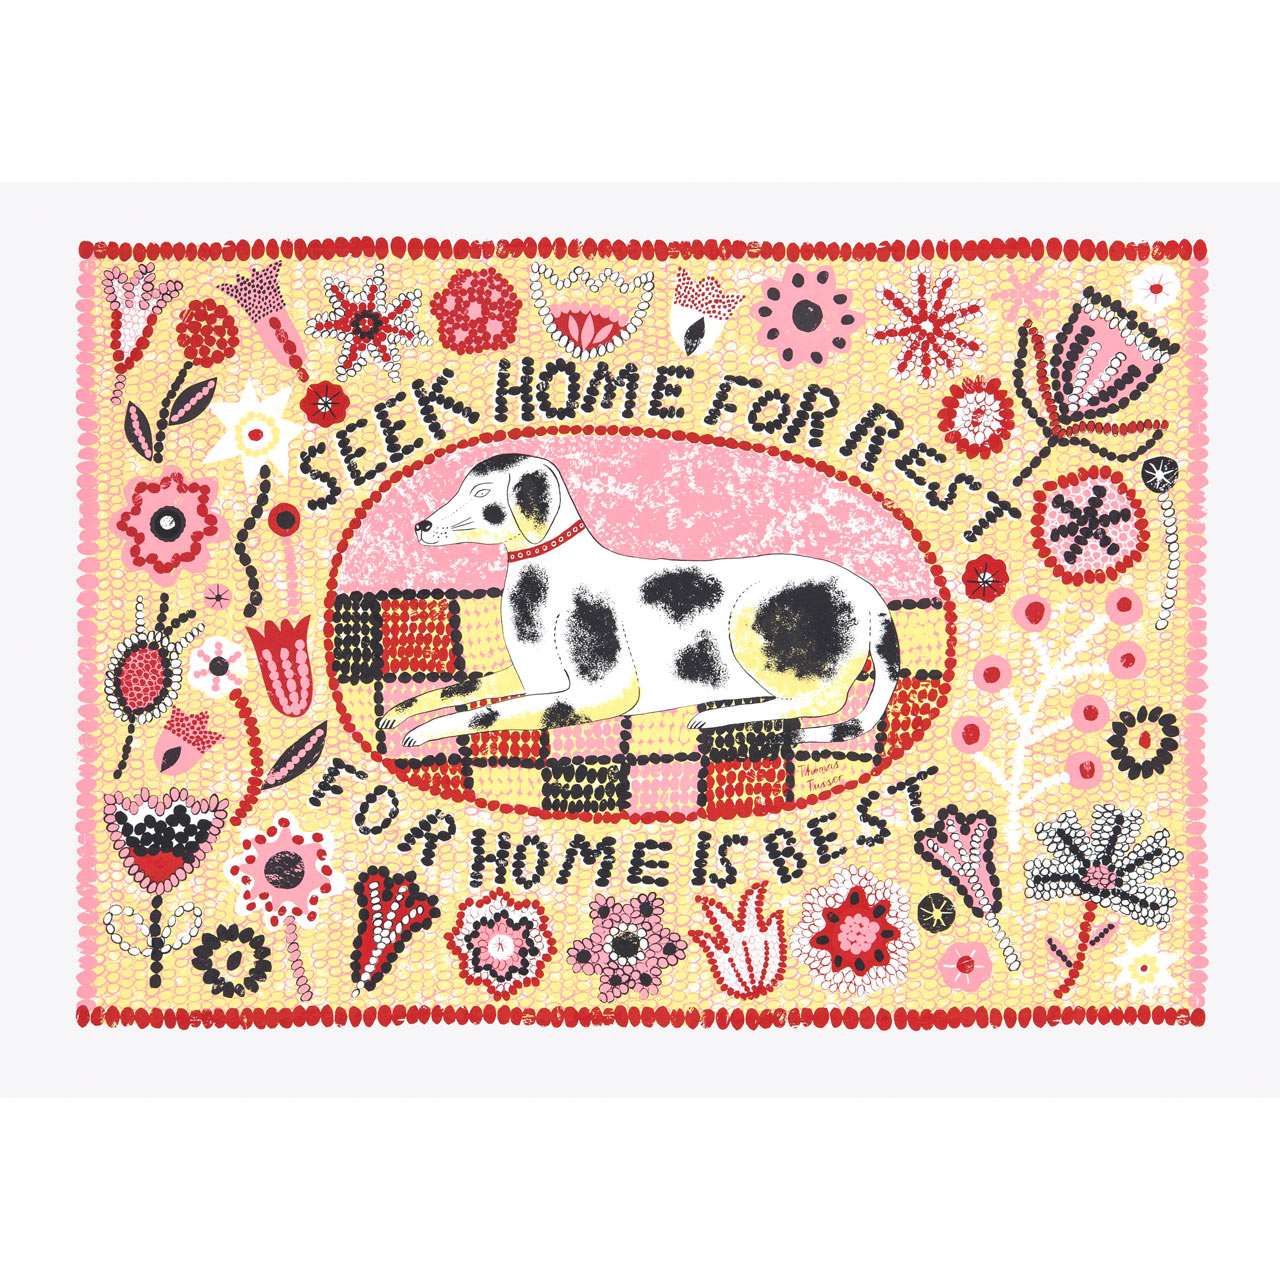 Seek Home for Rest Print